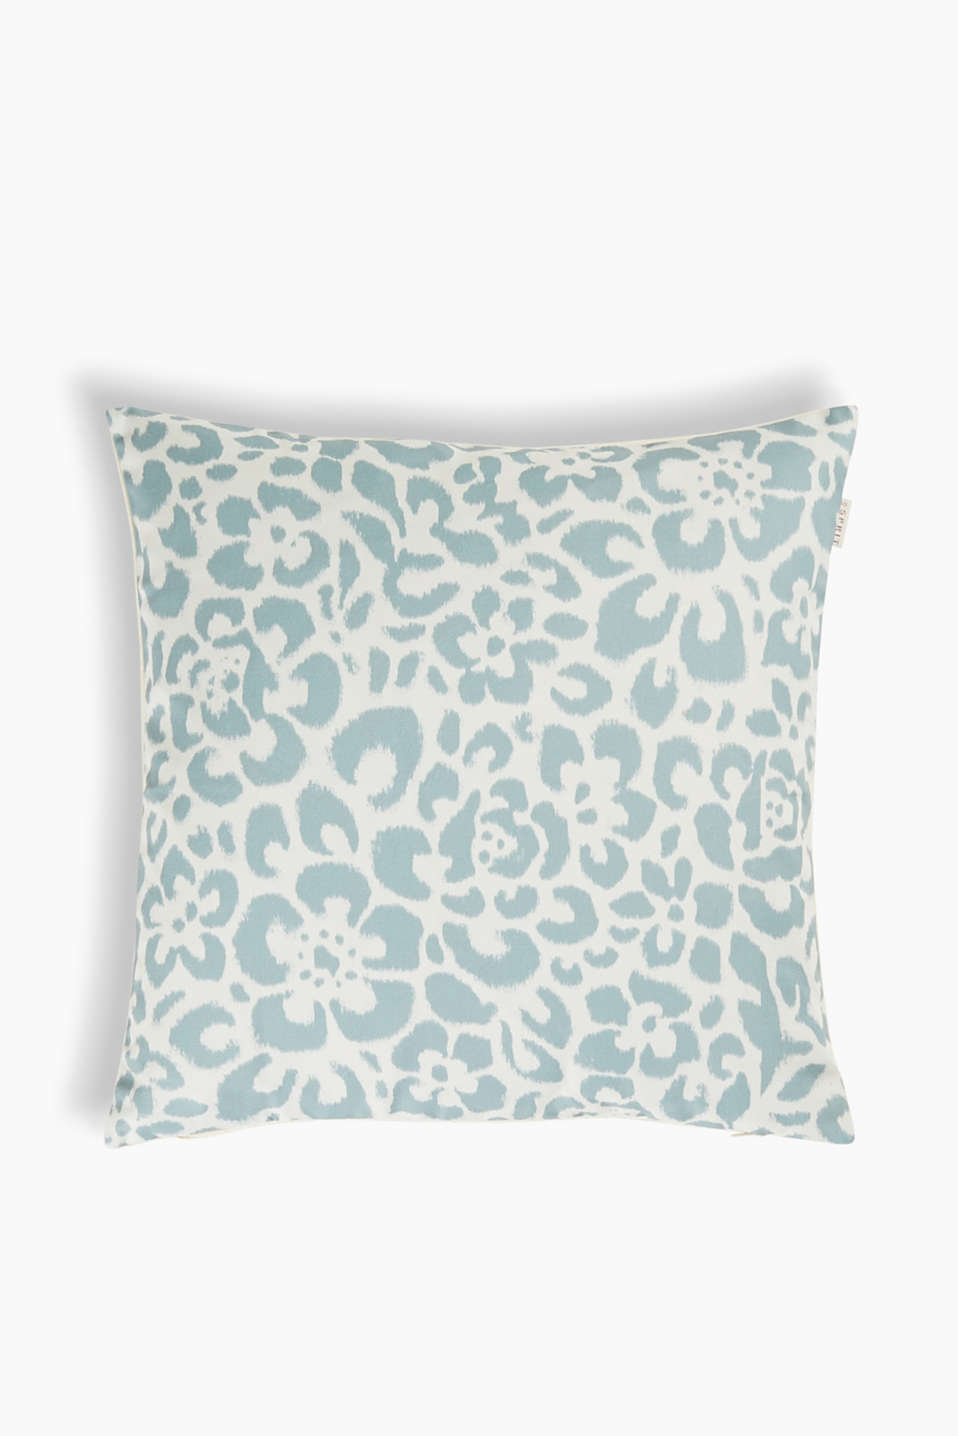 Esprit - Leo digital print cushion cover